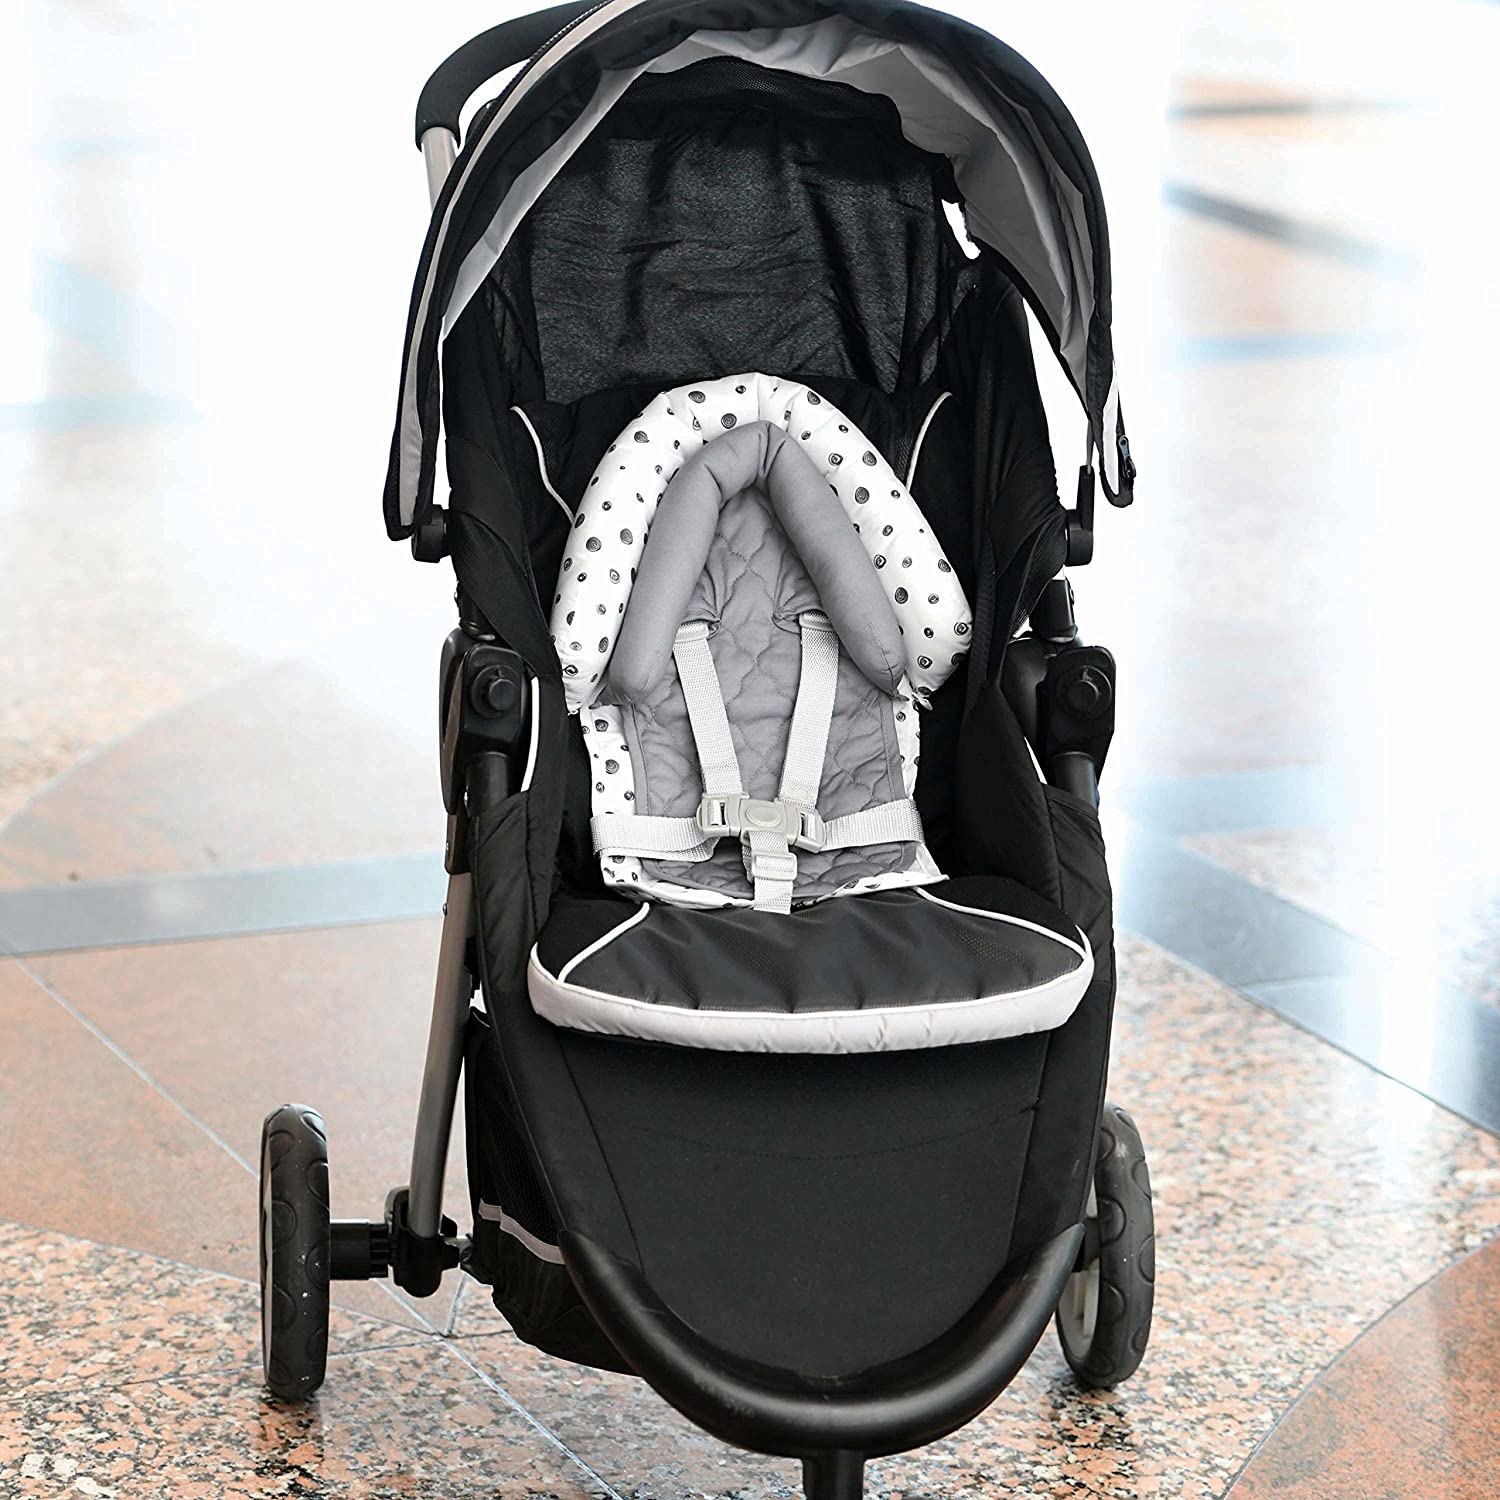 Travel Bug Baby 2-in-1 Head Support for Car Seats White//Grey